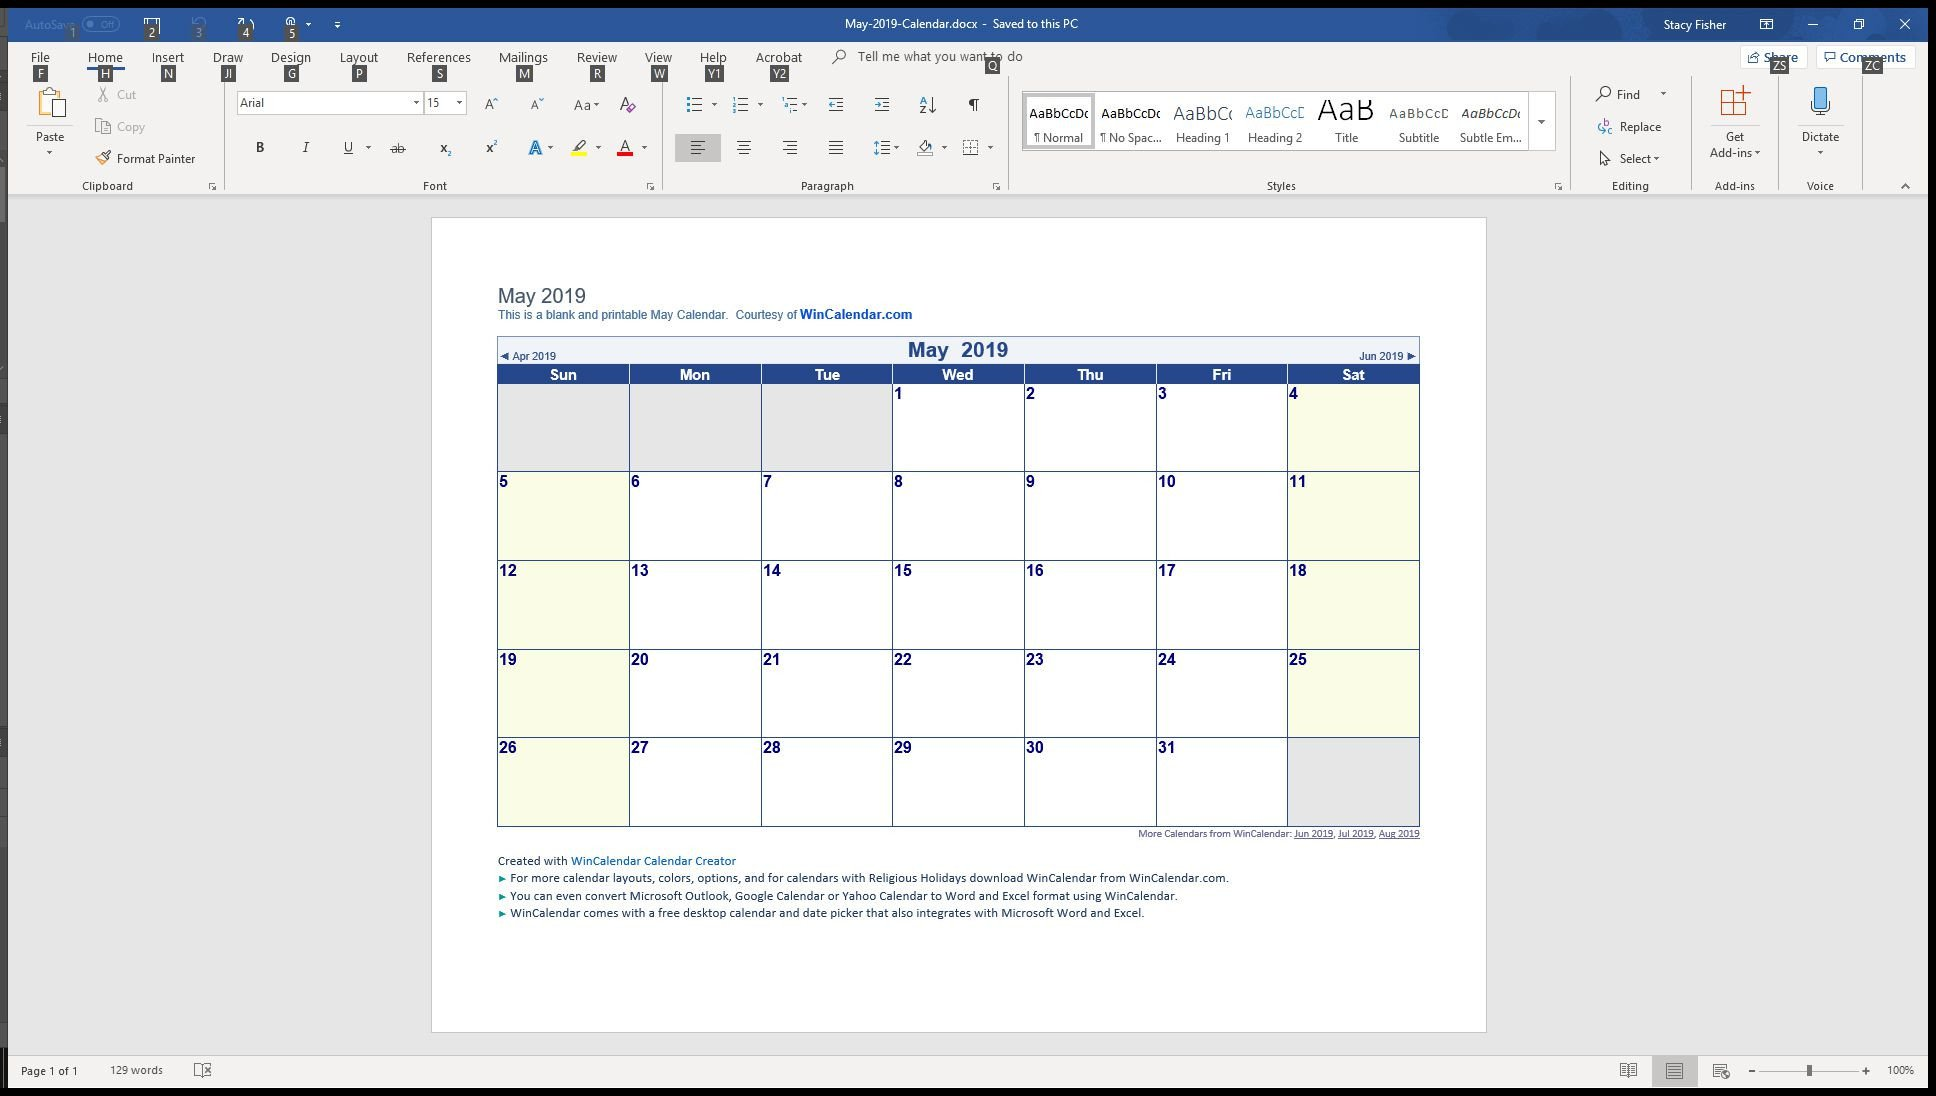 Calendar Template for Word 7 top Place to Find Free Calendar Templates for Word